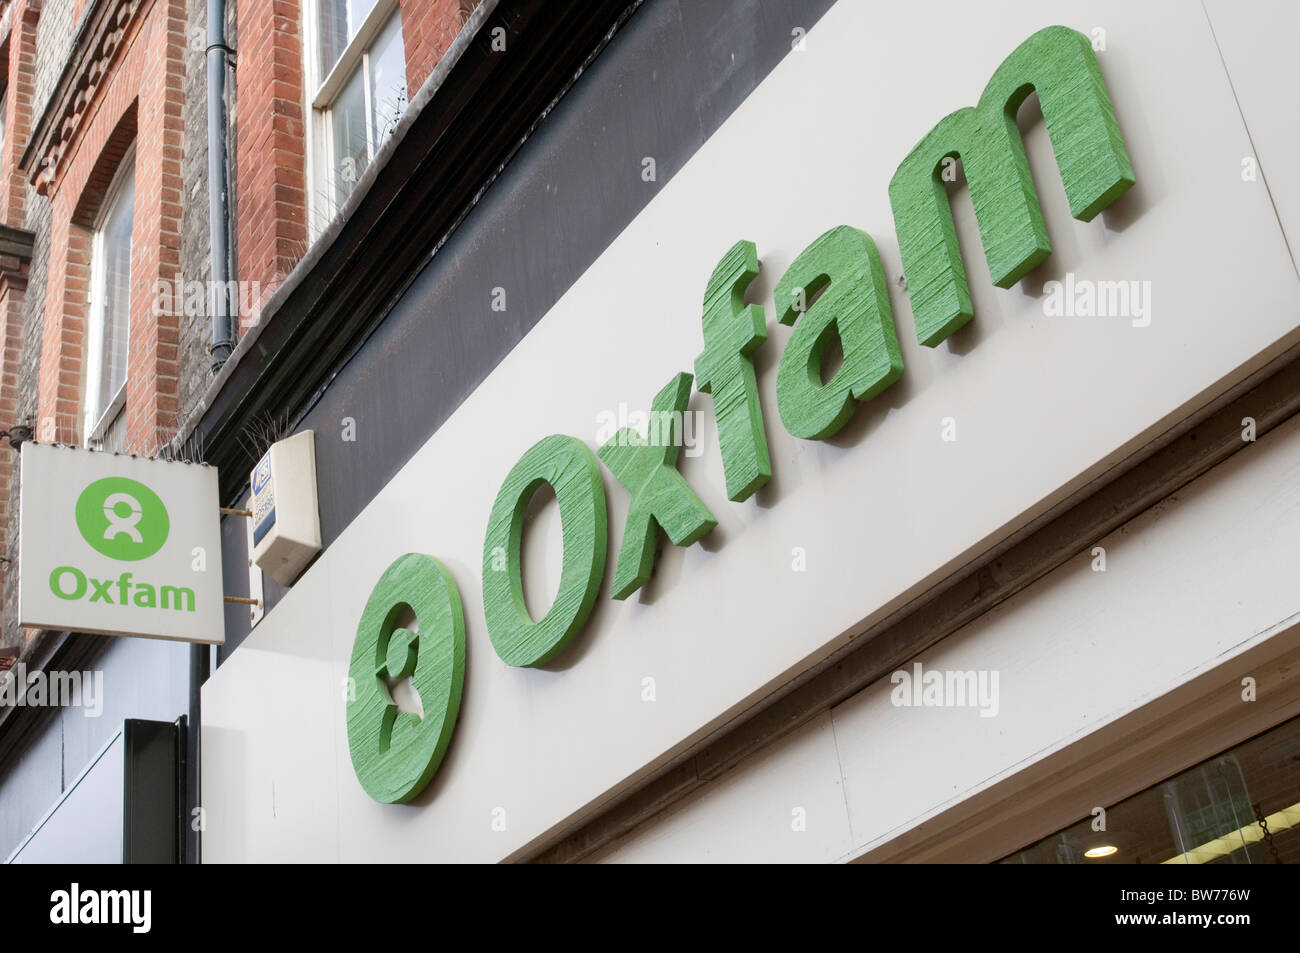 oxfam charity shops shop secondhand second hand clothes retail retailer charities uk high street highstreet logo - Stock Image